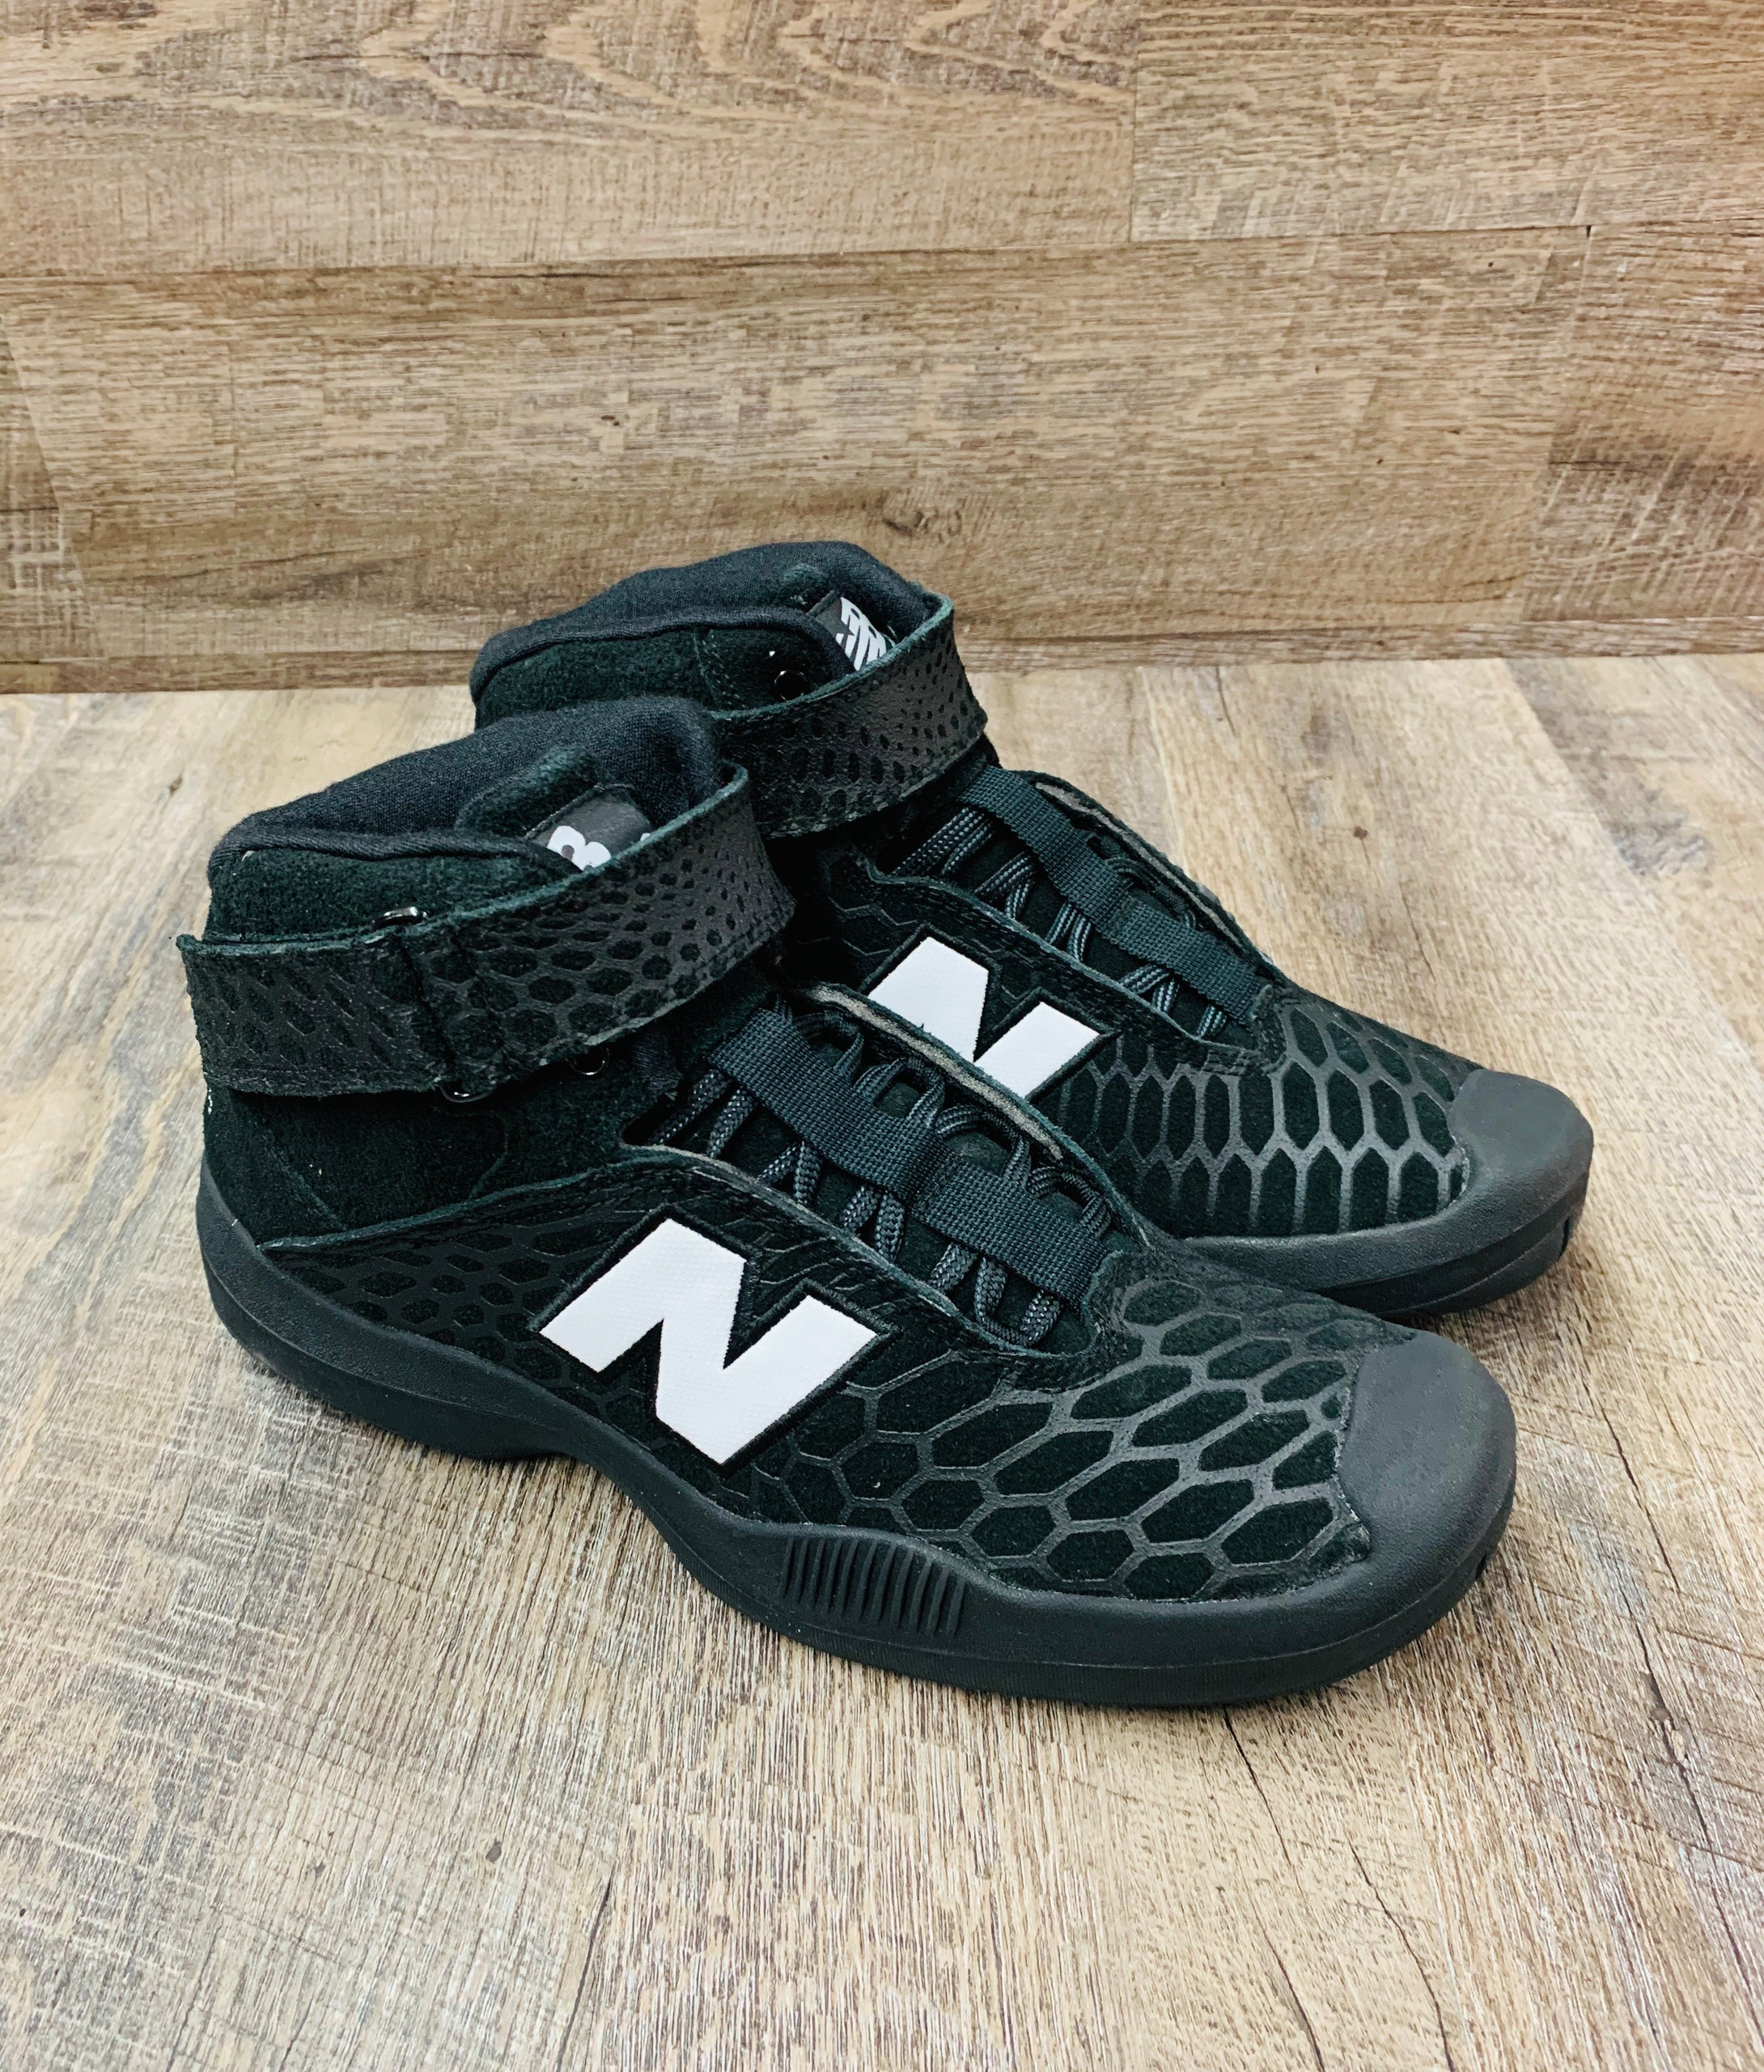 New Balance Pit Shoes New in box - size 12